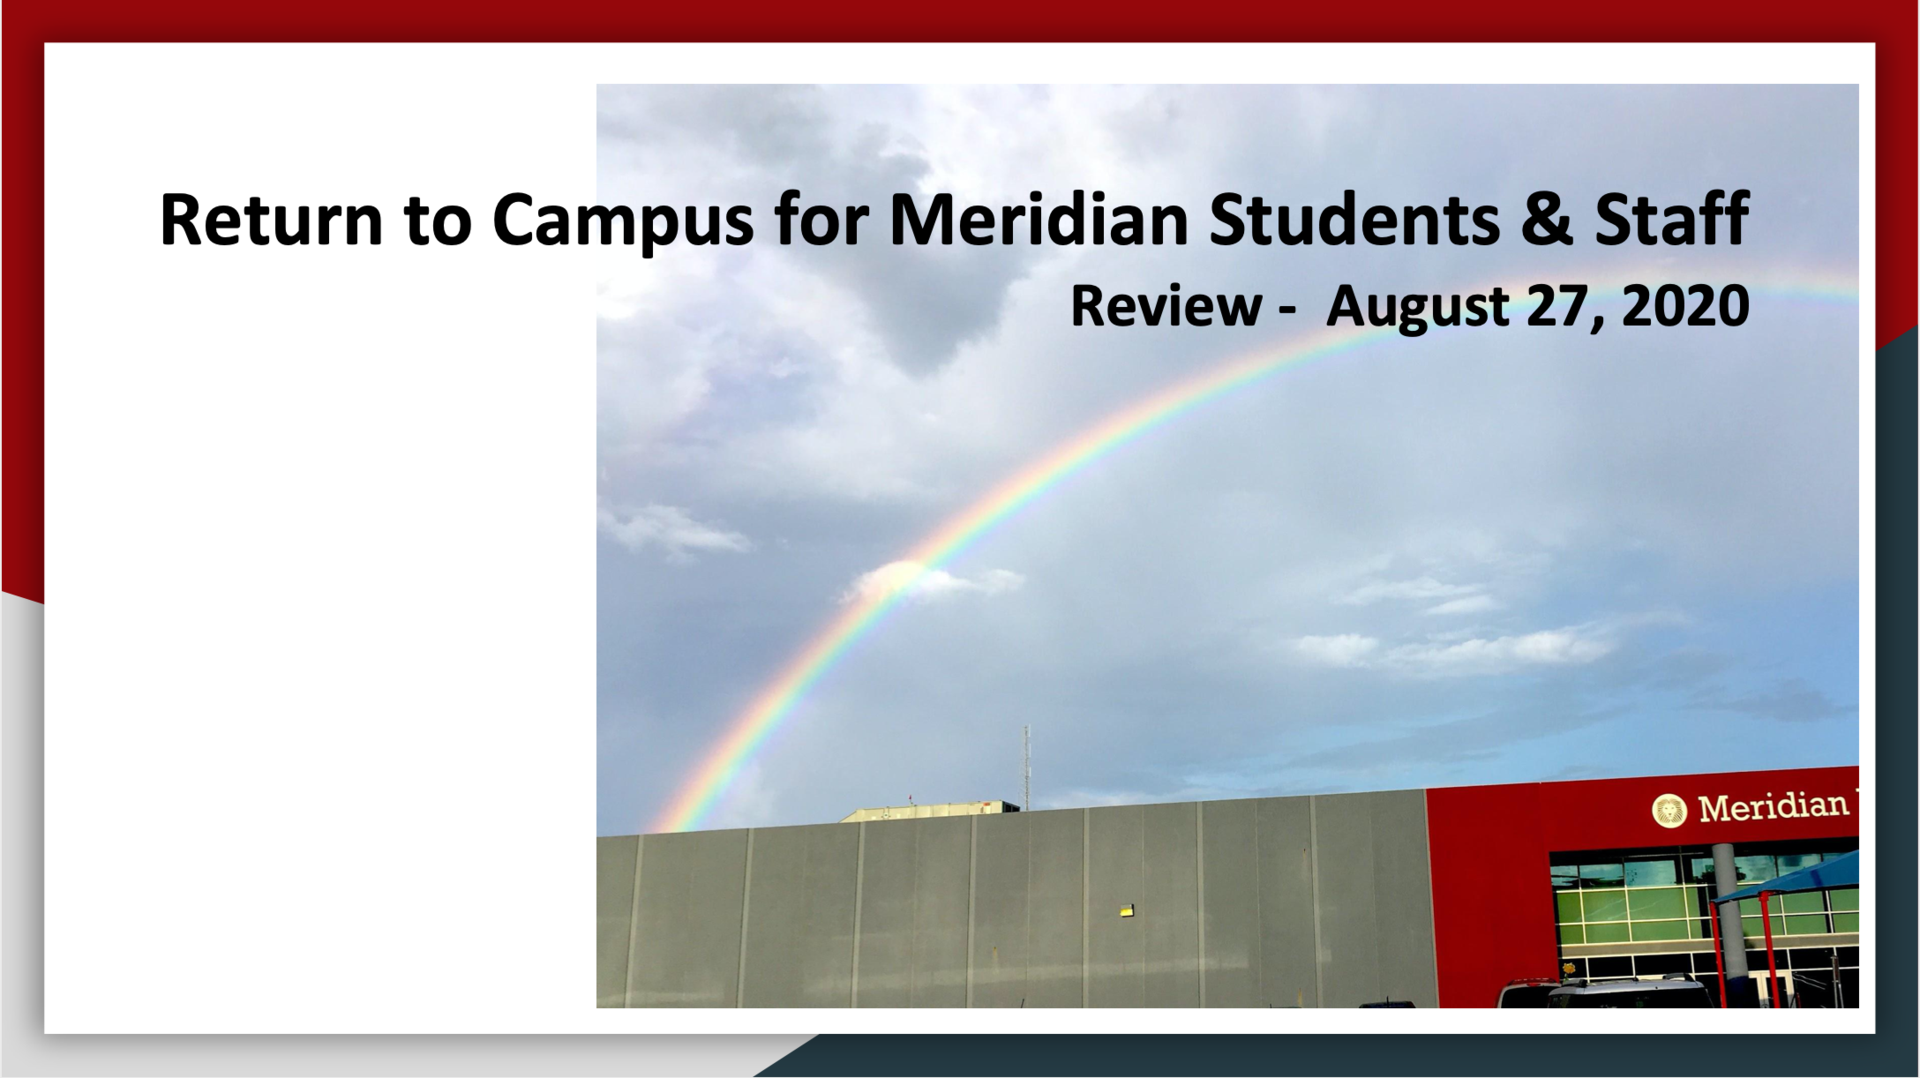 Return to Campus Overview